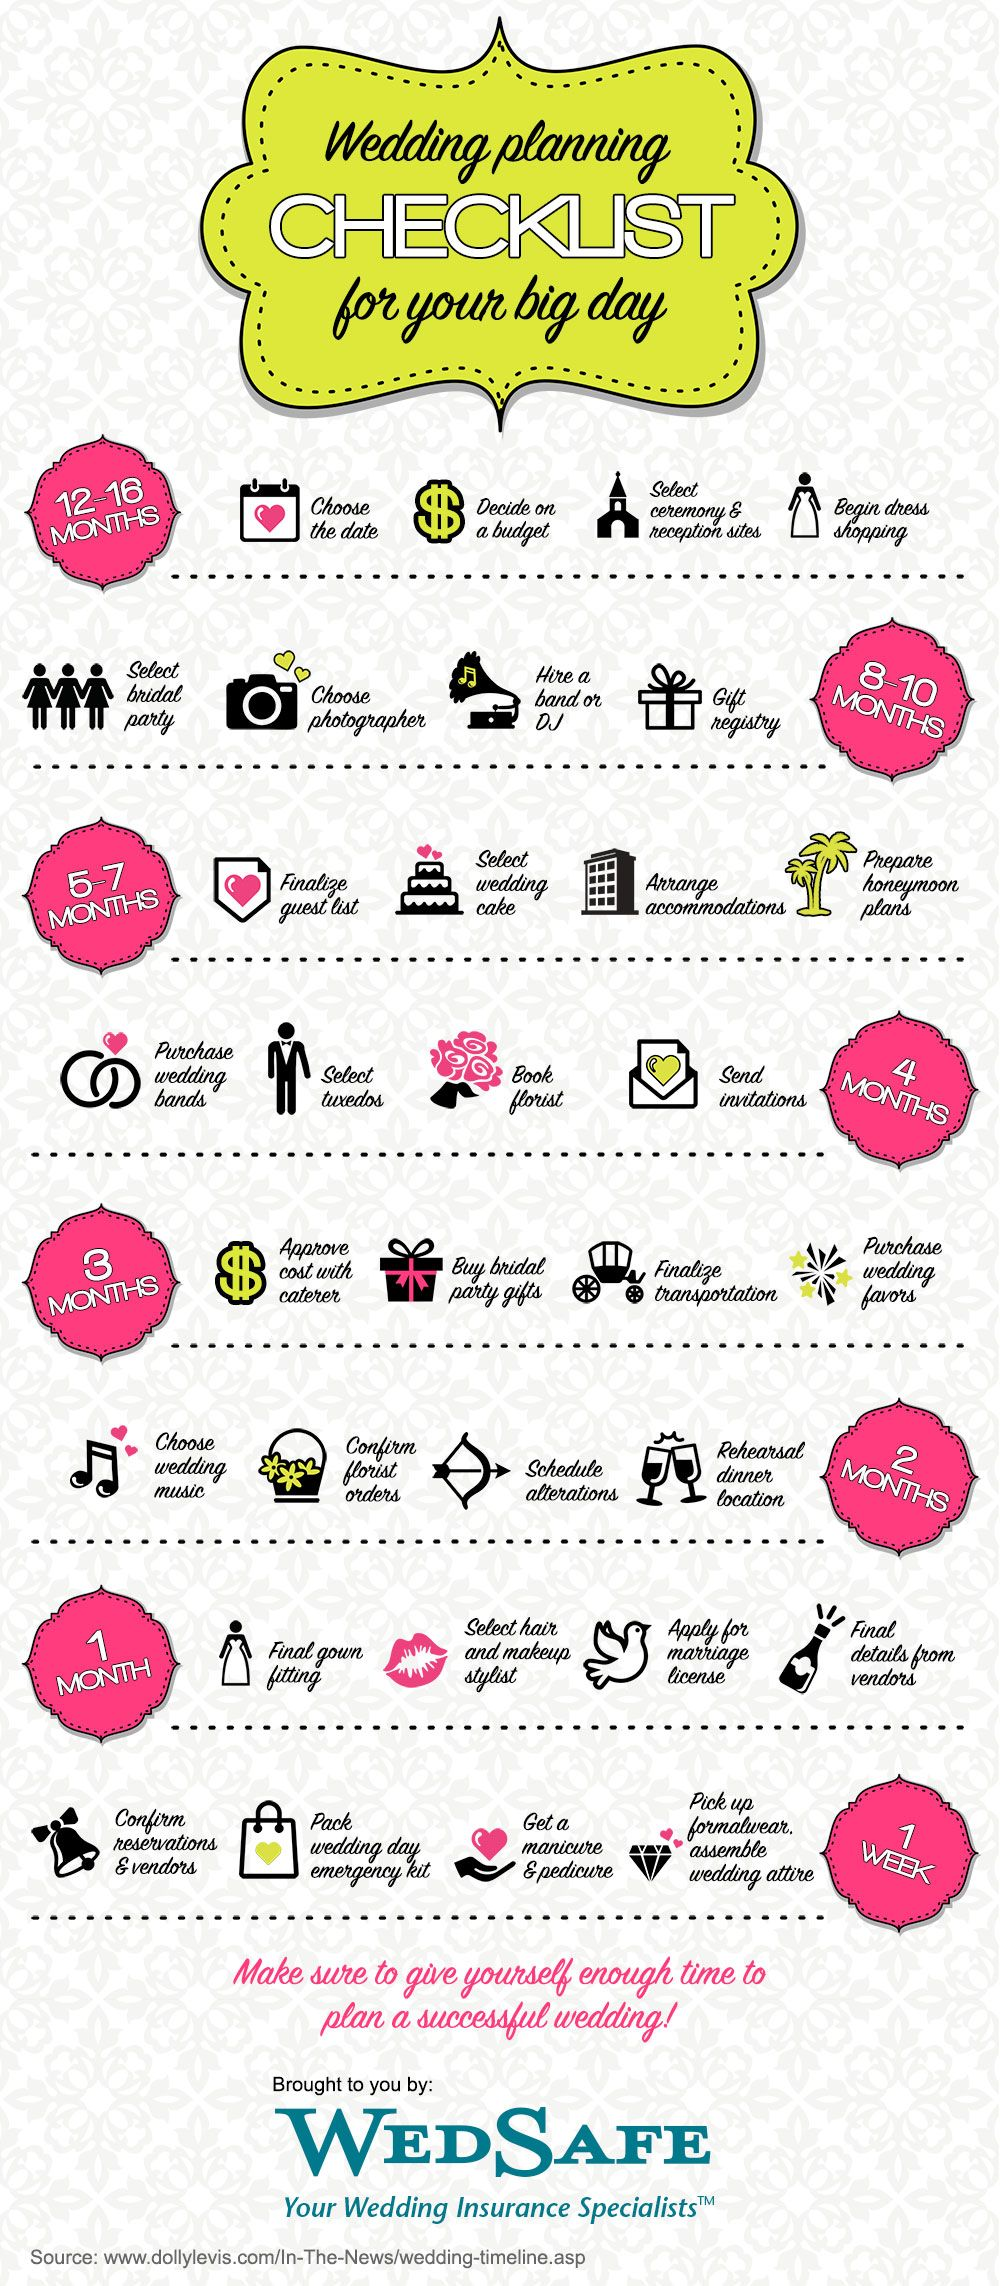 A Wedding Planning checklist and timeline for your big day ...